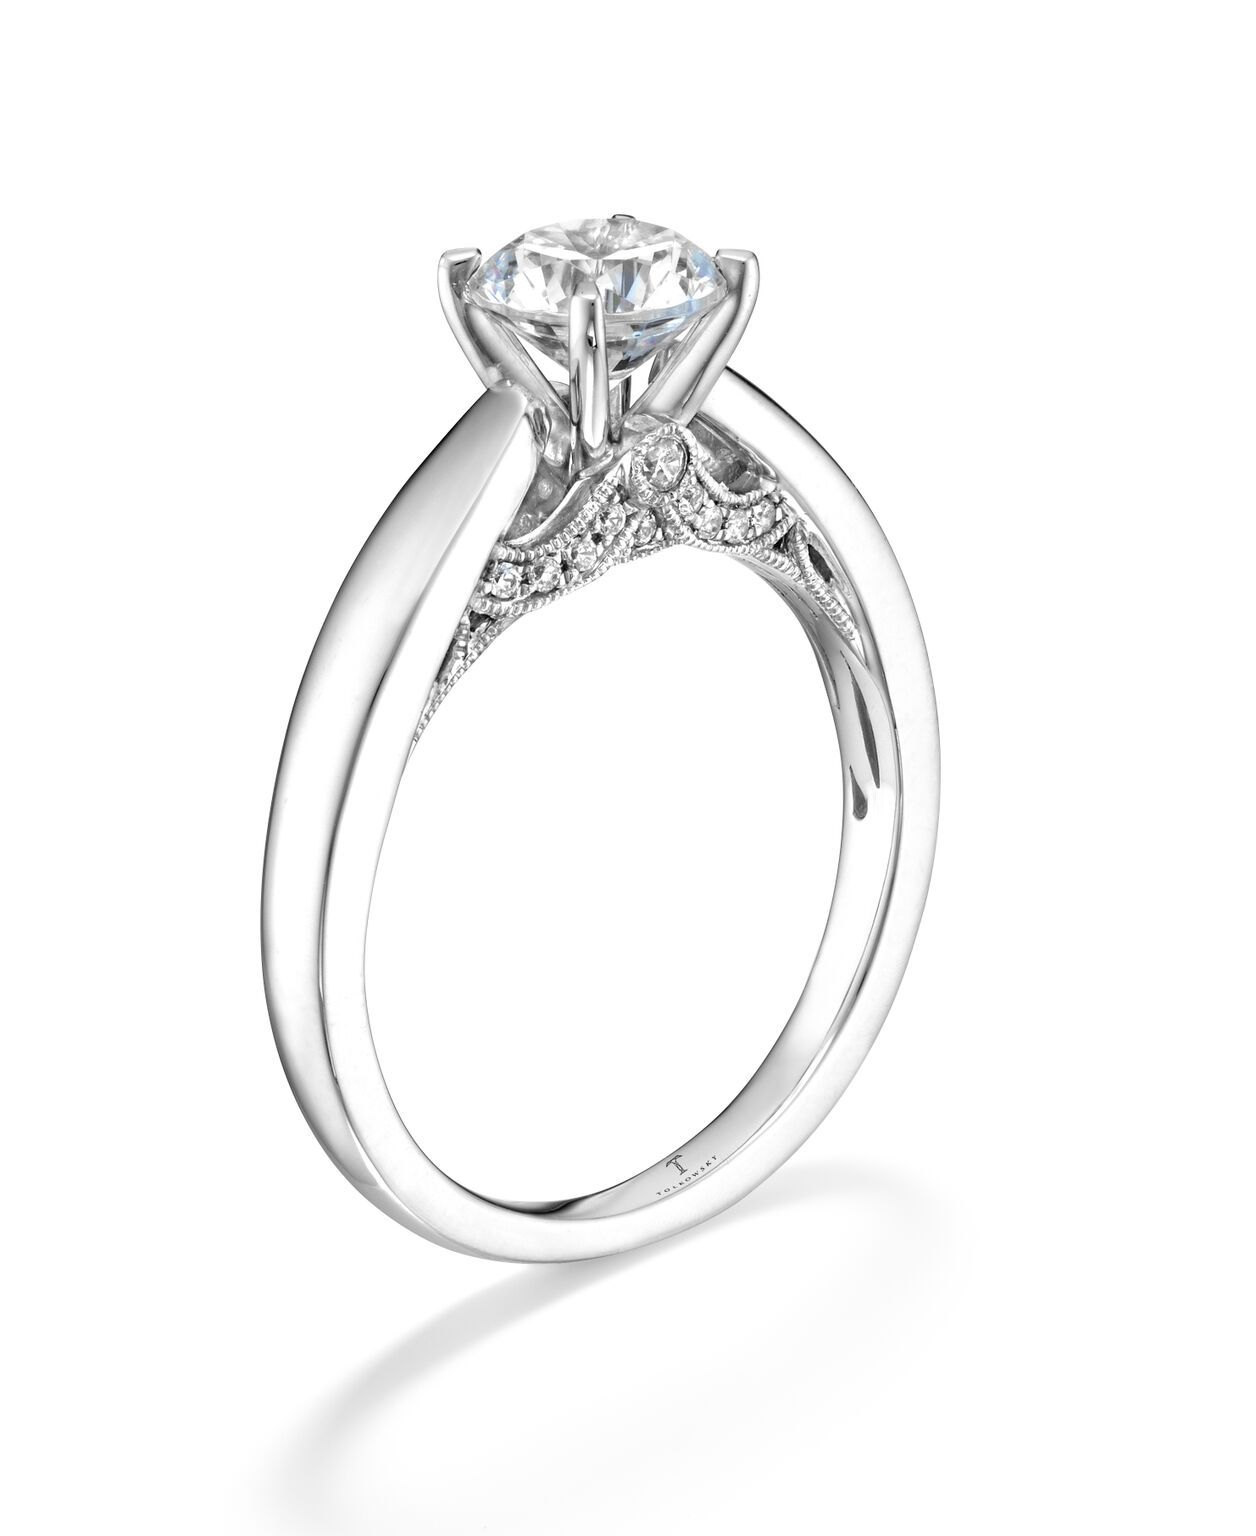 Tolkowsky Diamond Solitaire Engagement Ring in 14K White Gold. Available through Kay Jewelers in the US.